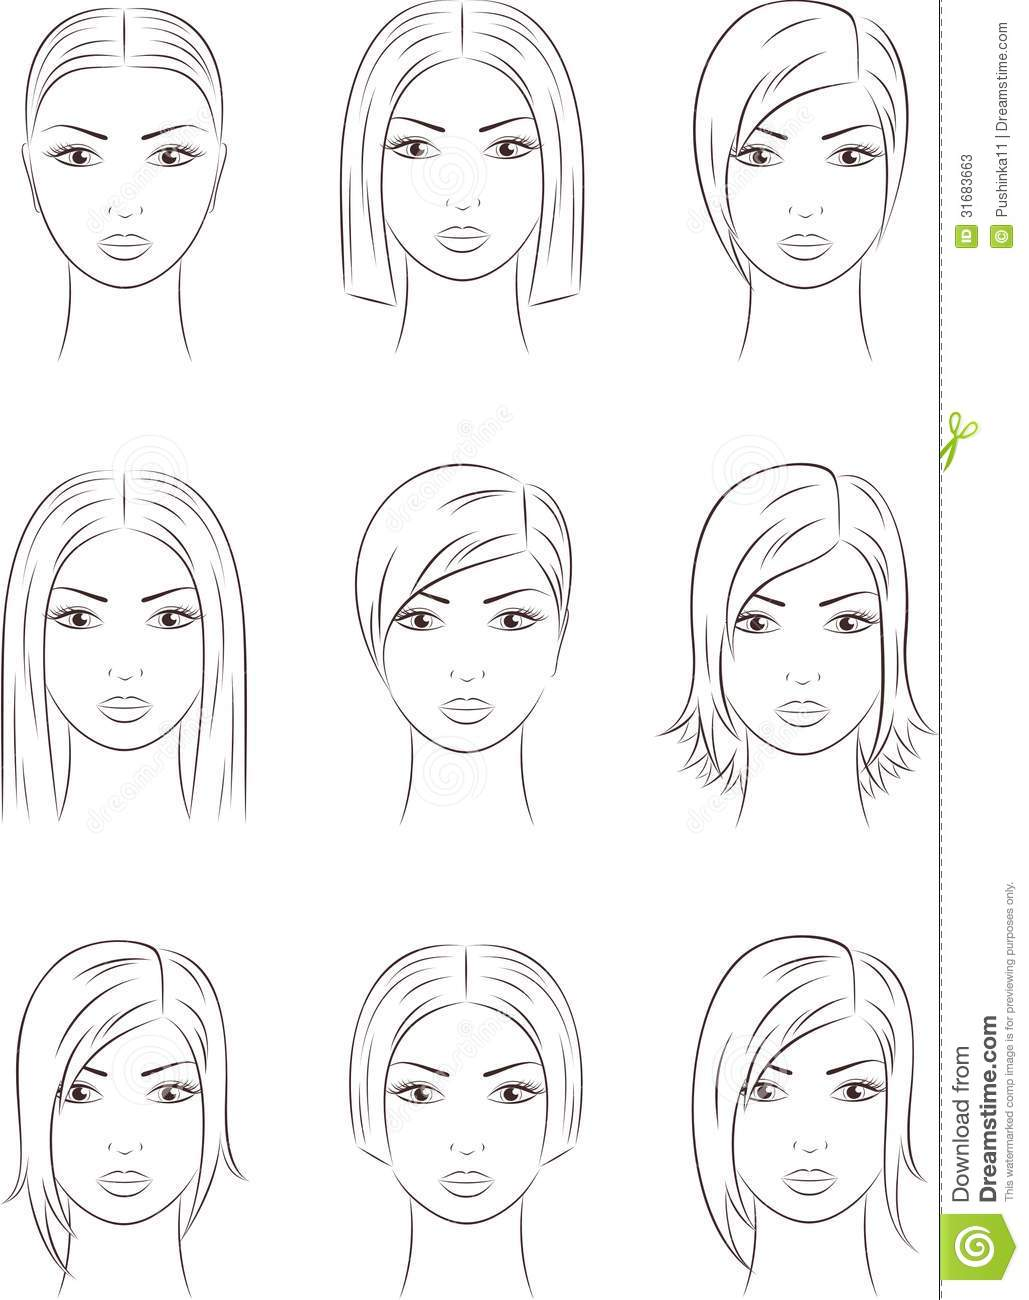 Stock Photos Womens Faces Vector Illustration Set Different Hairstyles Silhouettes Image31683663 besides How To Draw Malachite From Steven Universe as well 20120724 82258 additionally Chibi Sketches 90020290 also Sonic OC Sapphire The Bat 334134313. on drawing hairstyles